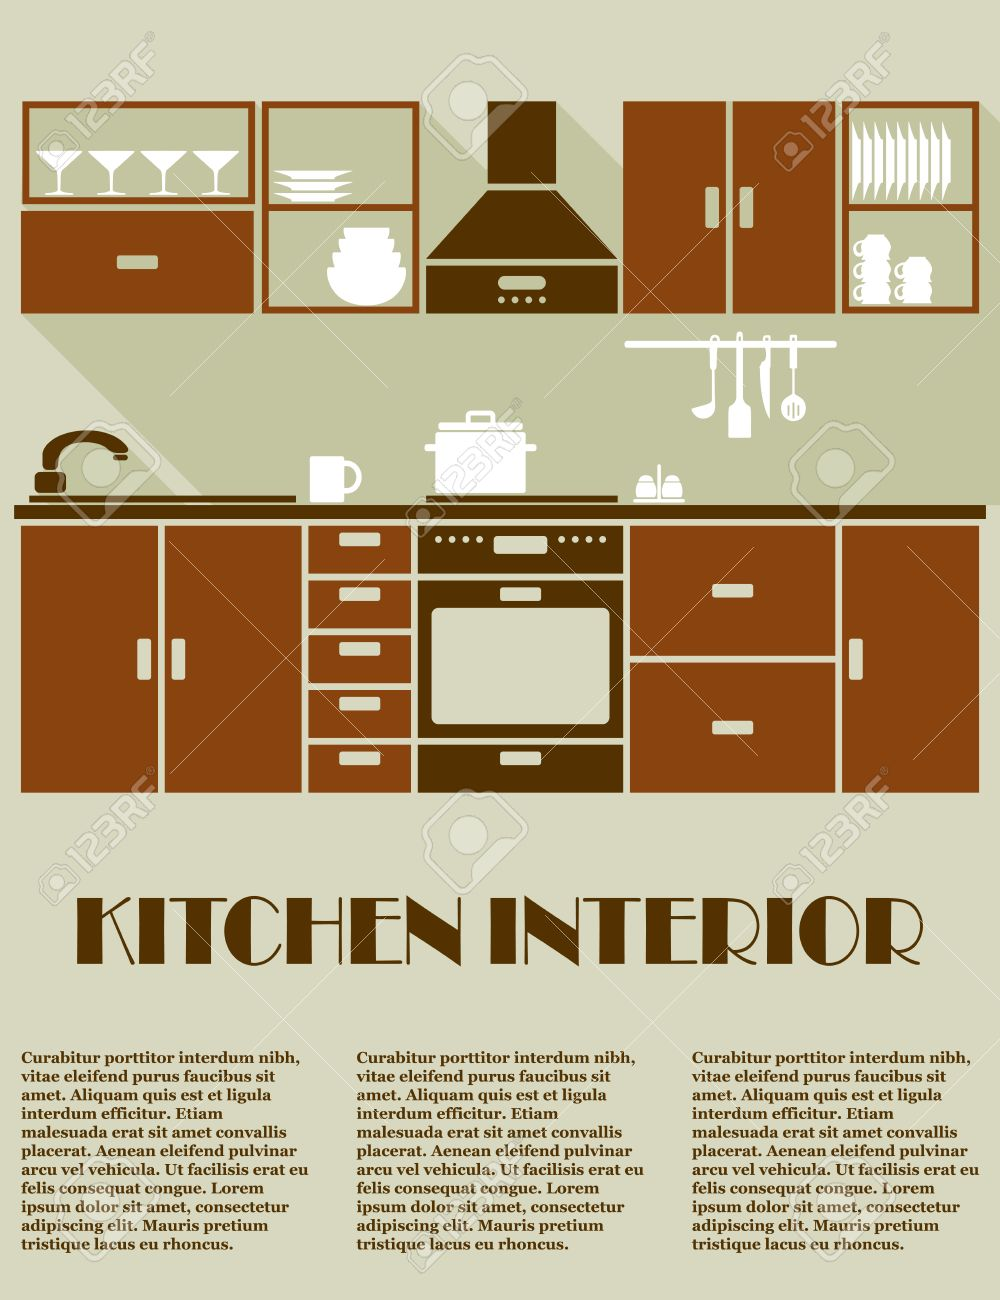 Modern Kitchen Interior In Brown Colors With Modular Cabinets Royalty Free Cliparts Vectors And Stock Illustration Image 38924210